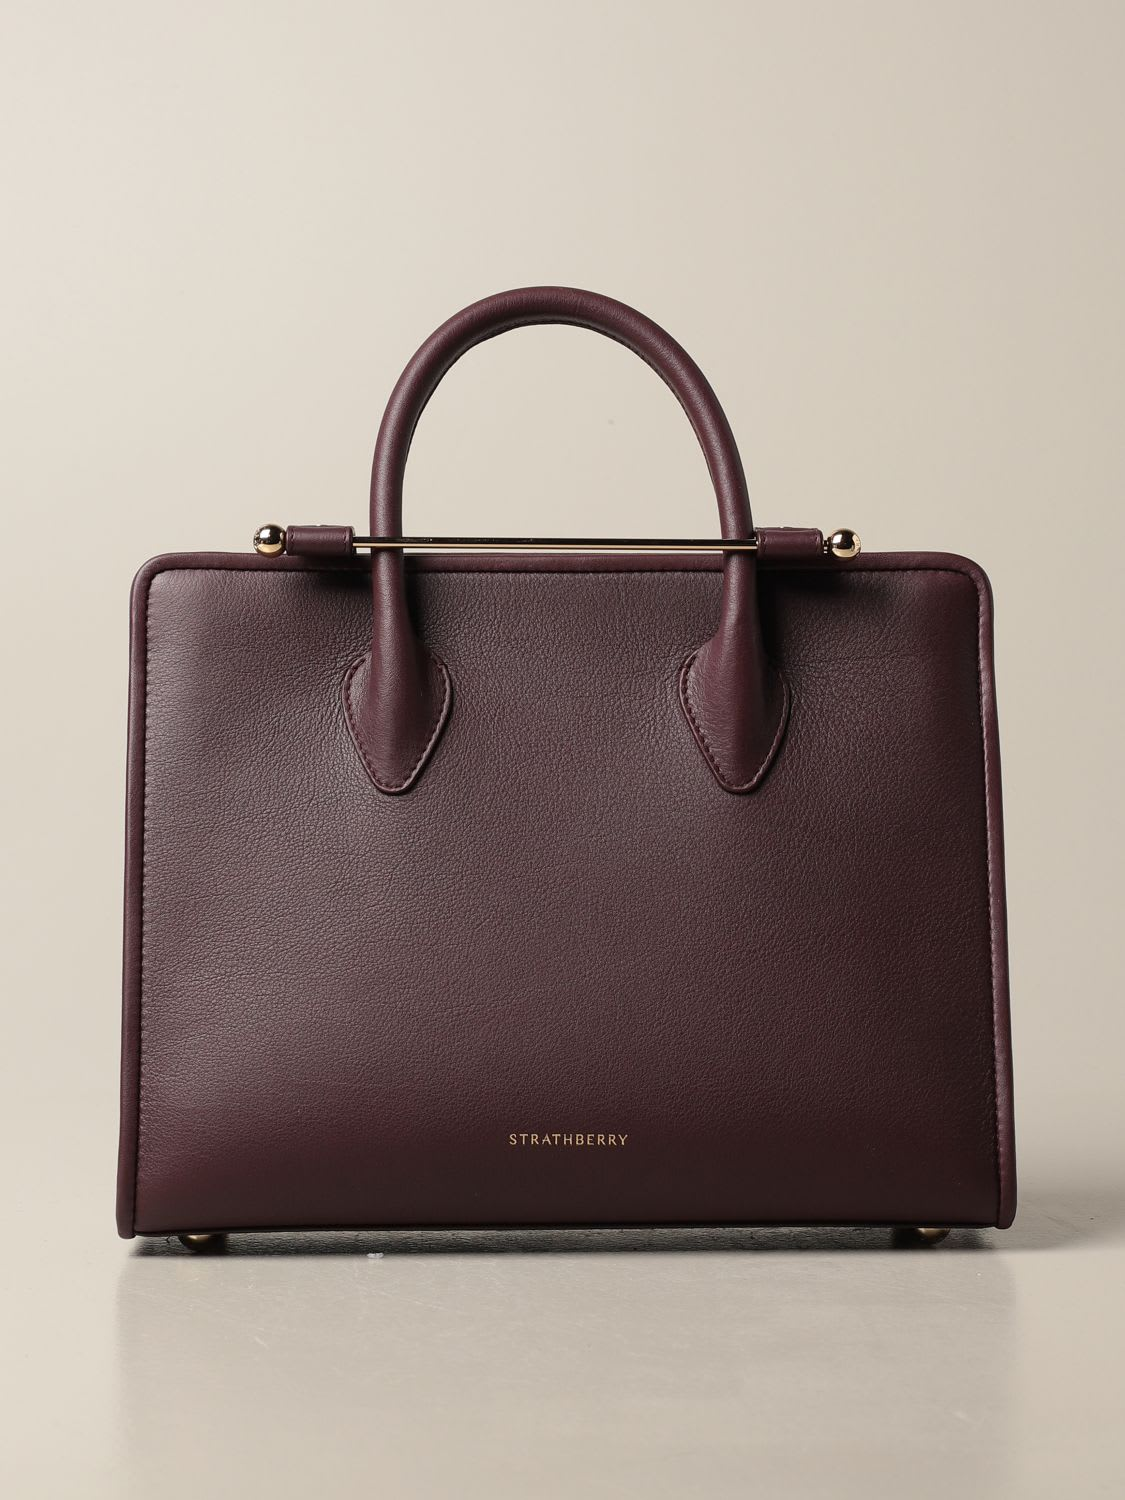 Strathberry Tote Bags Strathberry Midi Tote Bag In Leather